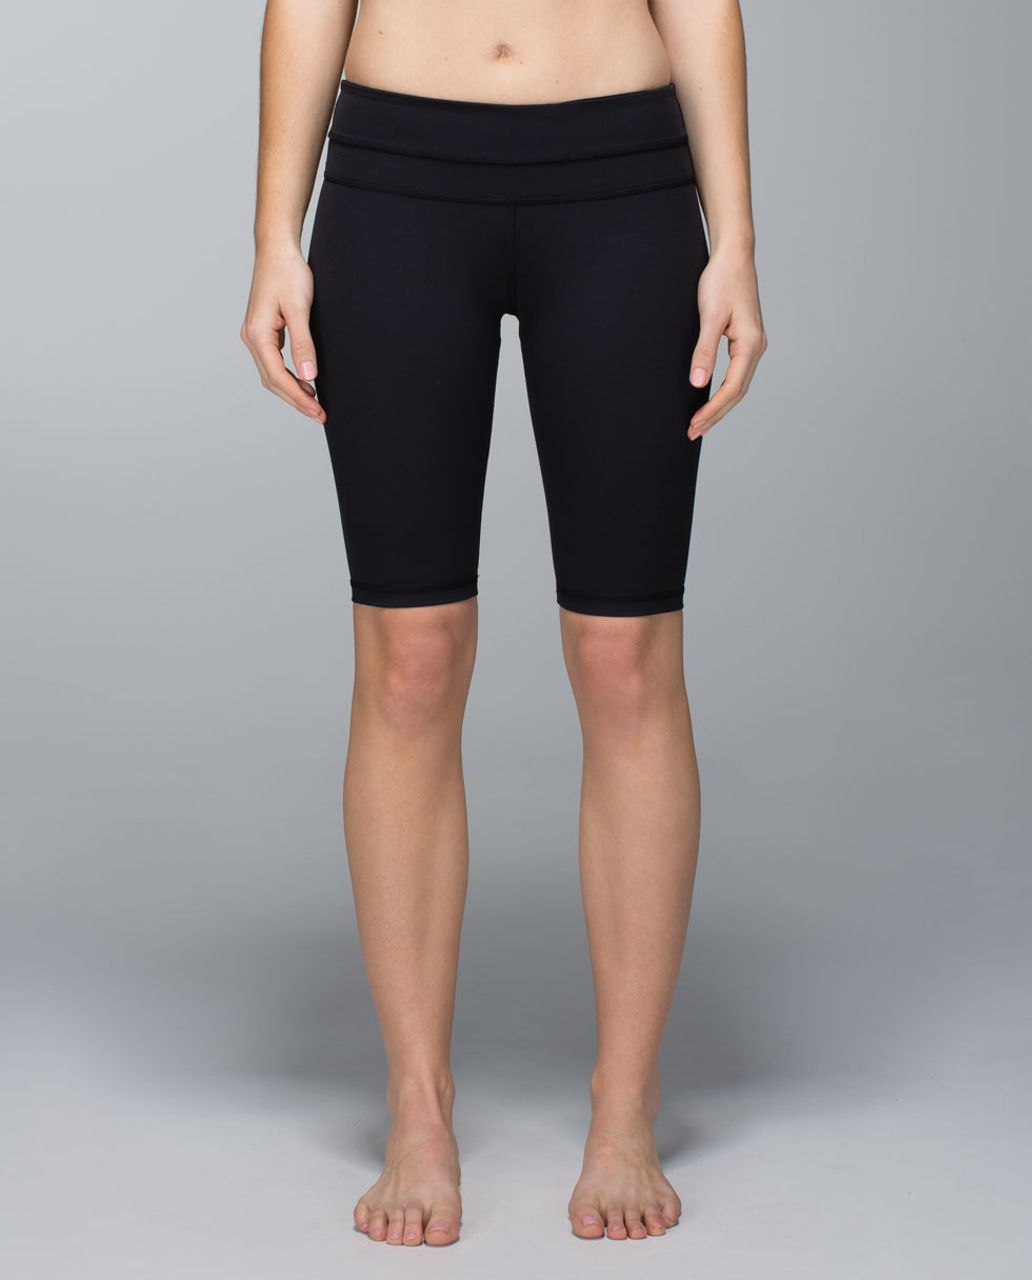 Lululemon Groove Short *Full-On Luxtreme (Tall) - Black